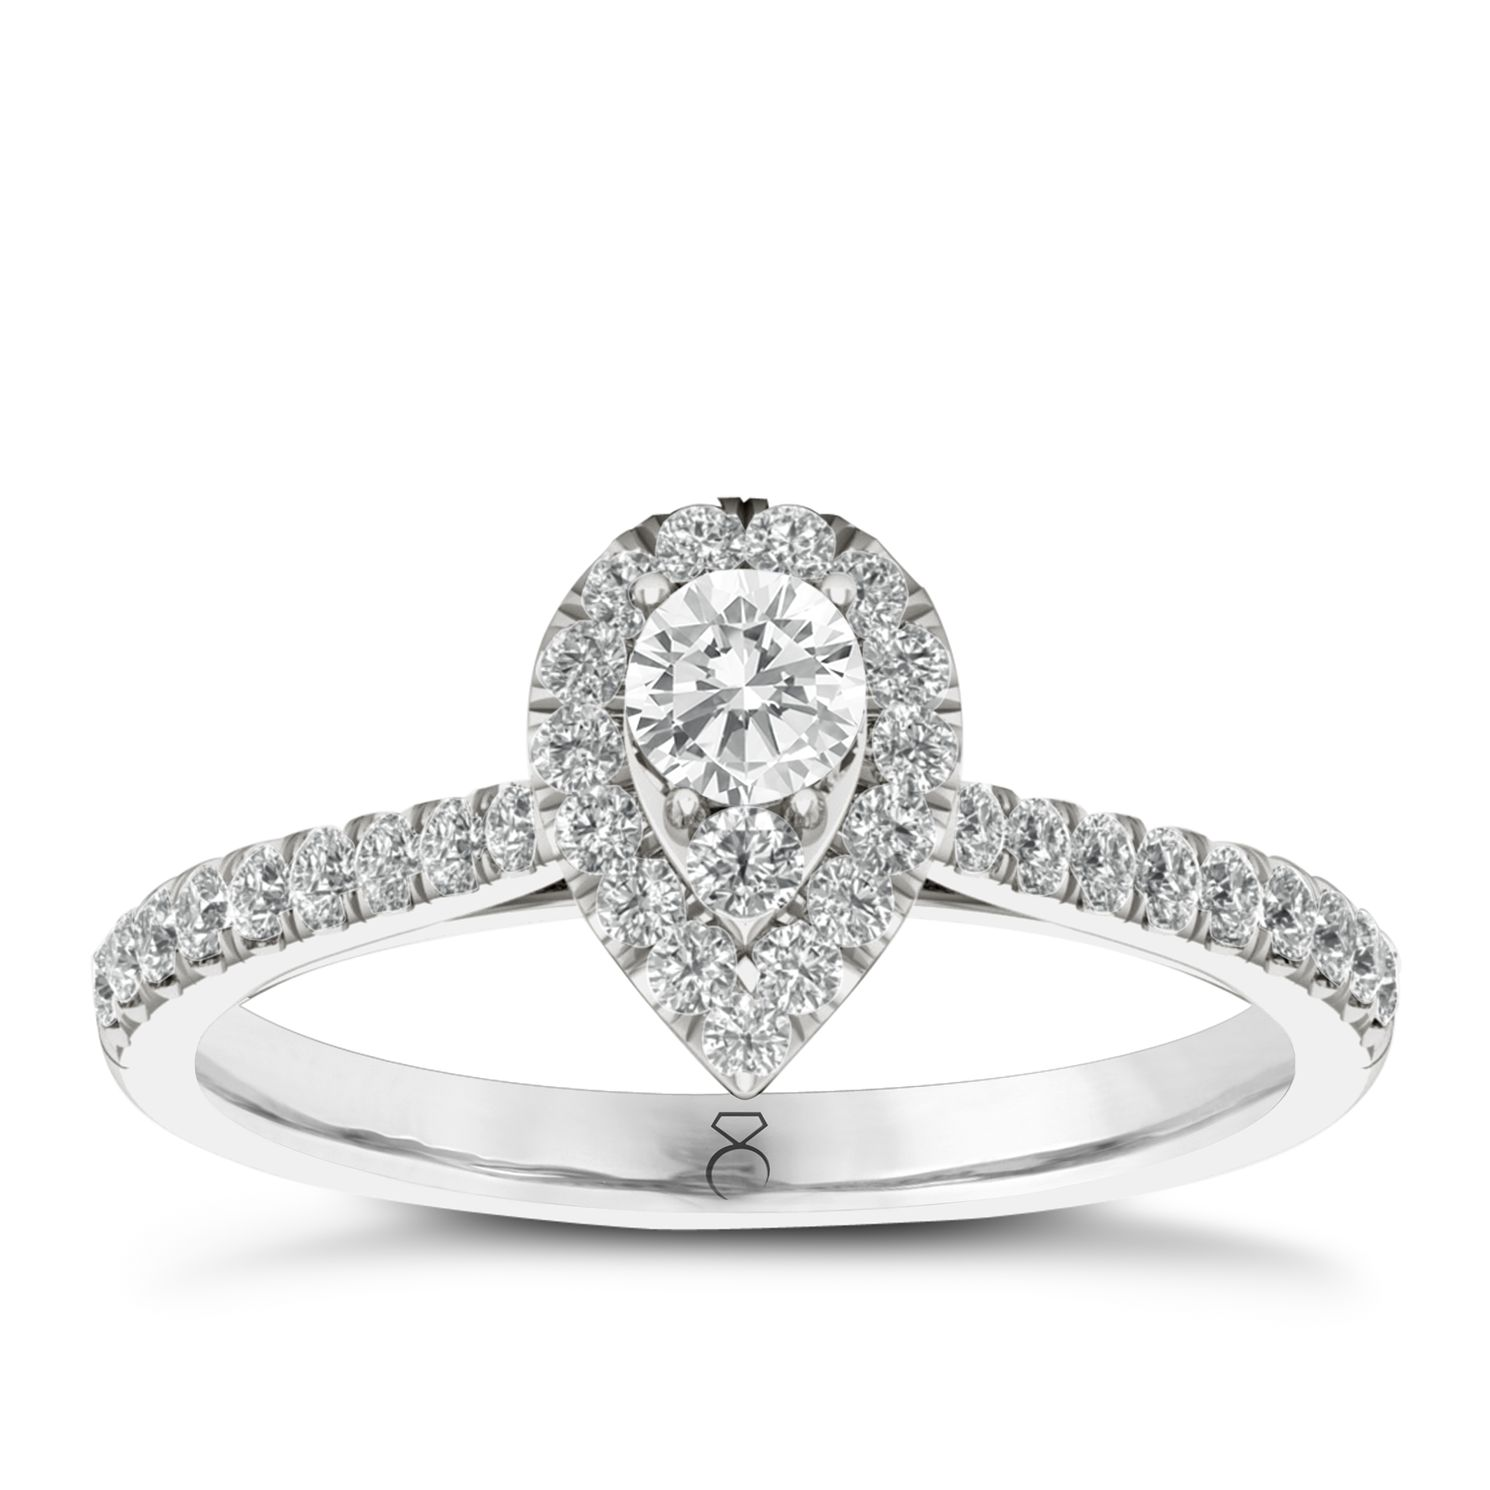 The Diamond Story 18ct White Gold 1/2ct Diamond Pear Ring - Product number 5428688